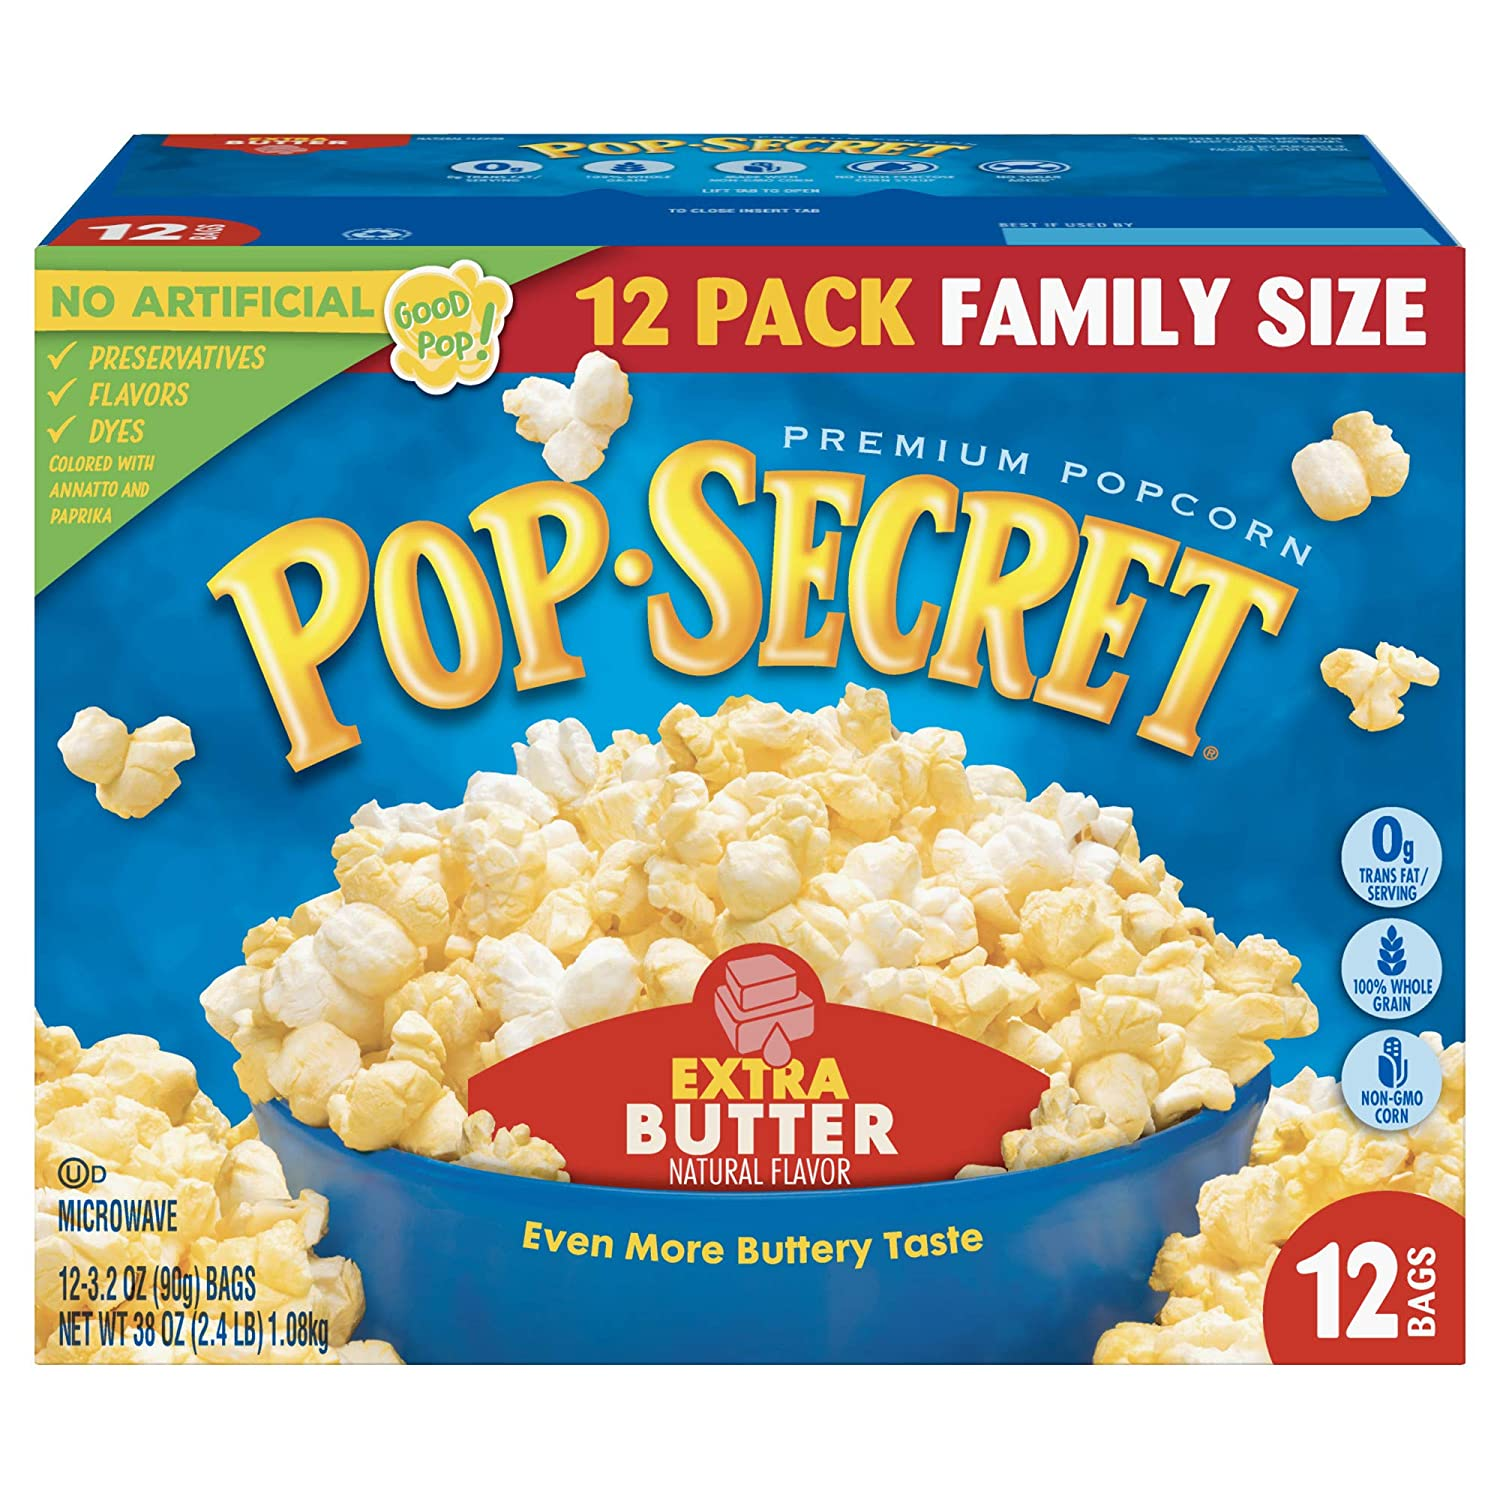 Pop Secret Tucson Mall Popcorn Extra Butter Microwave Bags 3.2 Max 67% OFF 12Count Oz